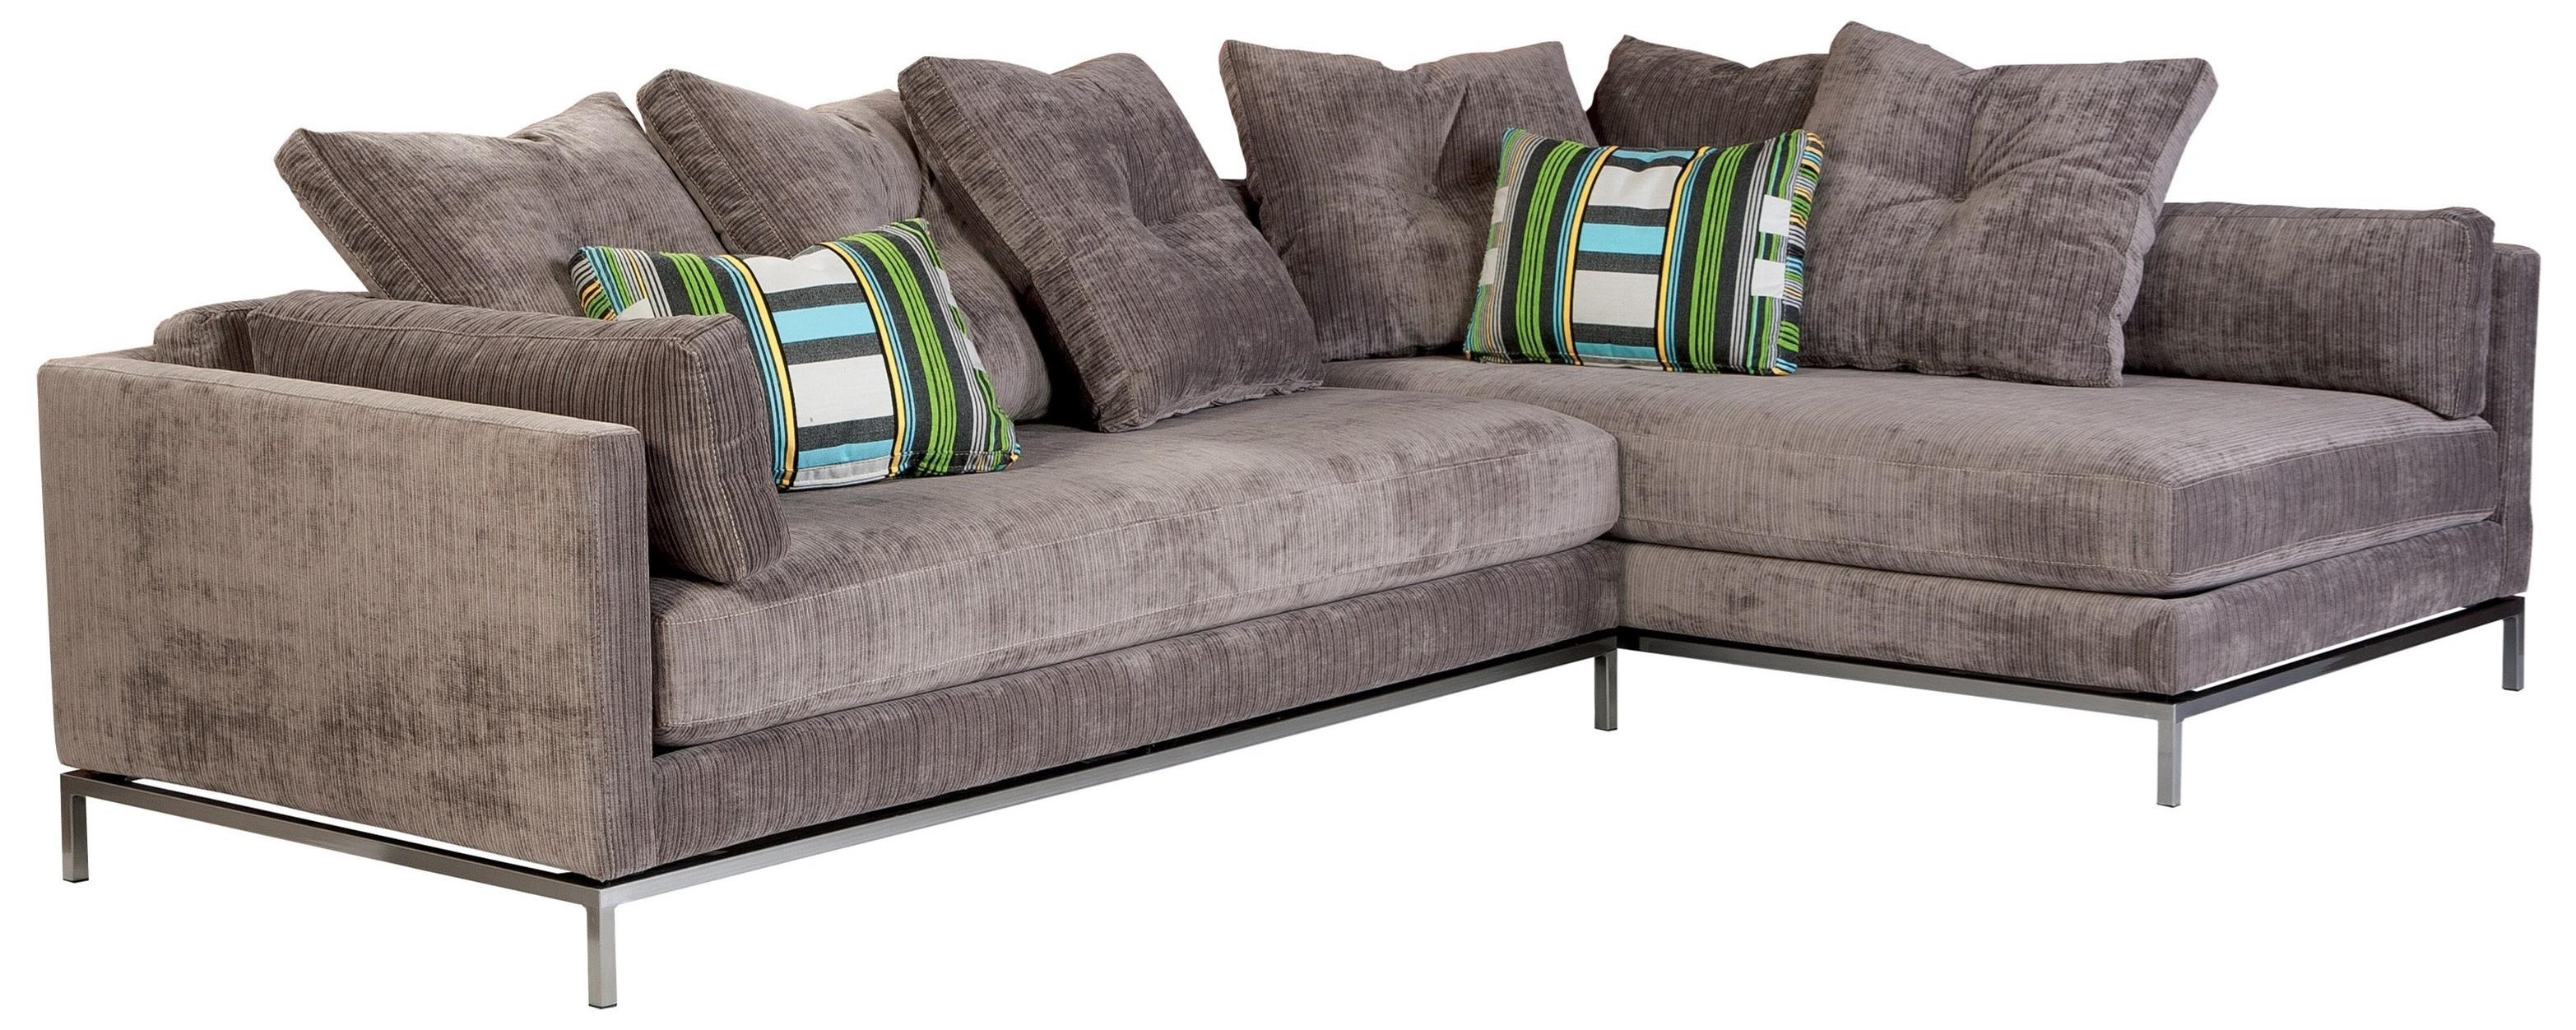 Jonathan Louis Cordoba Contemporary Sectional Sofa with Metal Base  sc 1 st  Rooms and Rest : jonathan louis sectional choices - Sectionals, Sofas & Couches